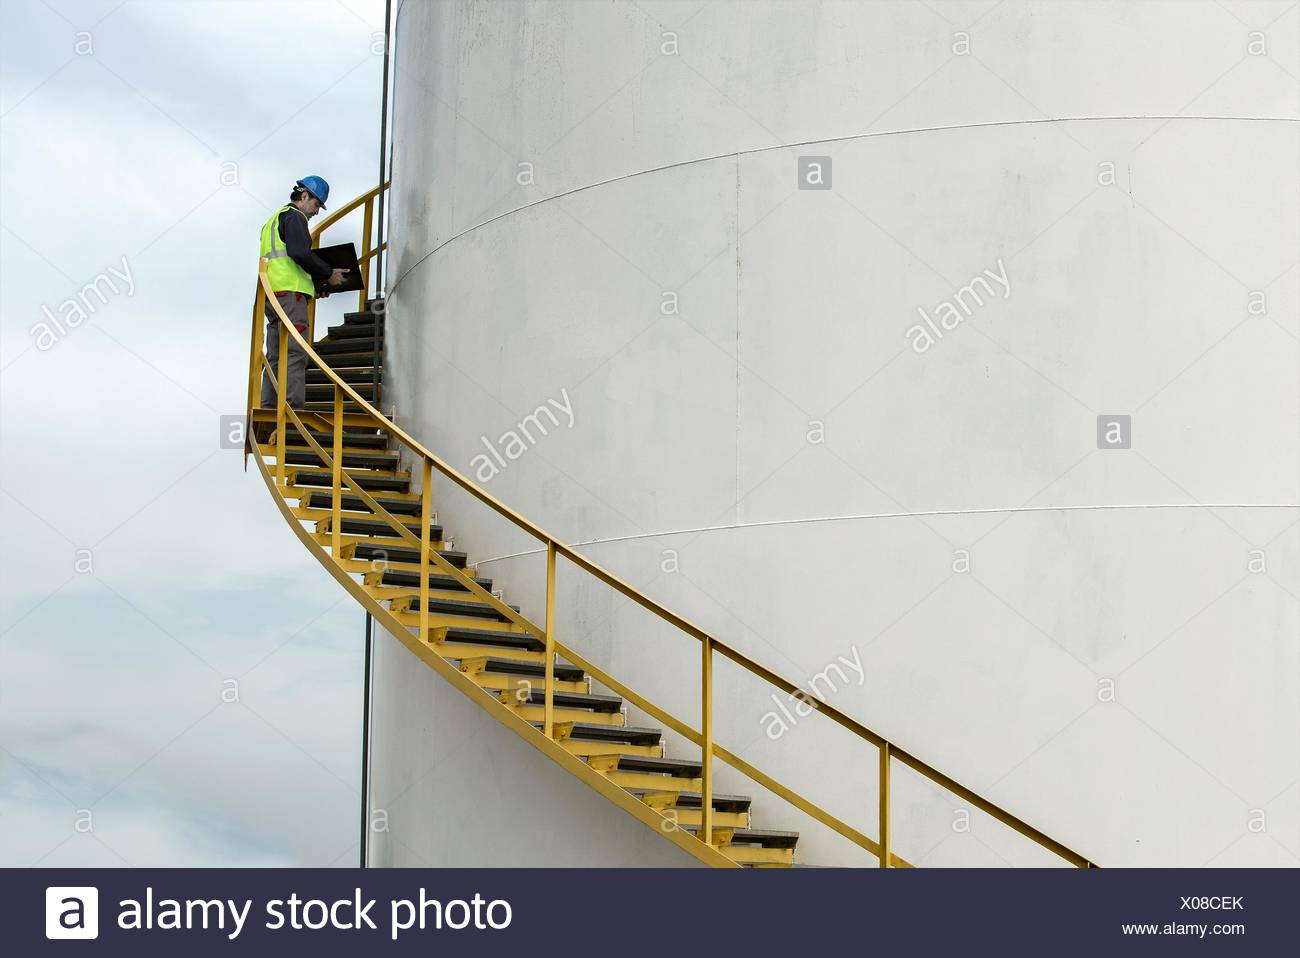 Industrial worker on stairs checking oil storage tank - Stock Image